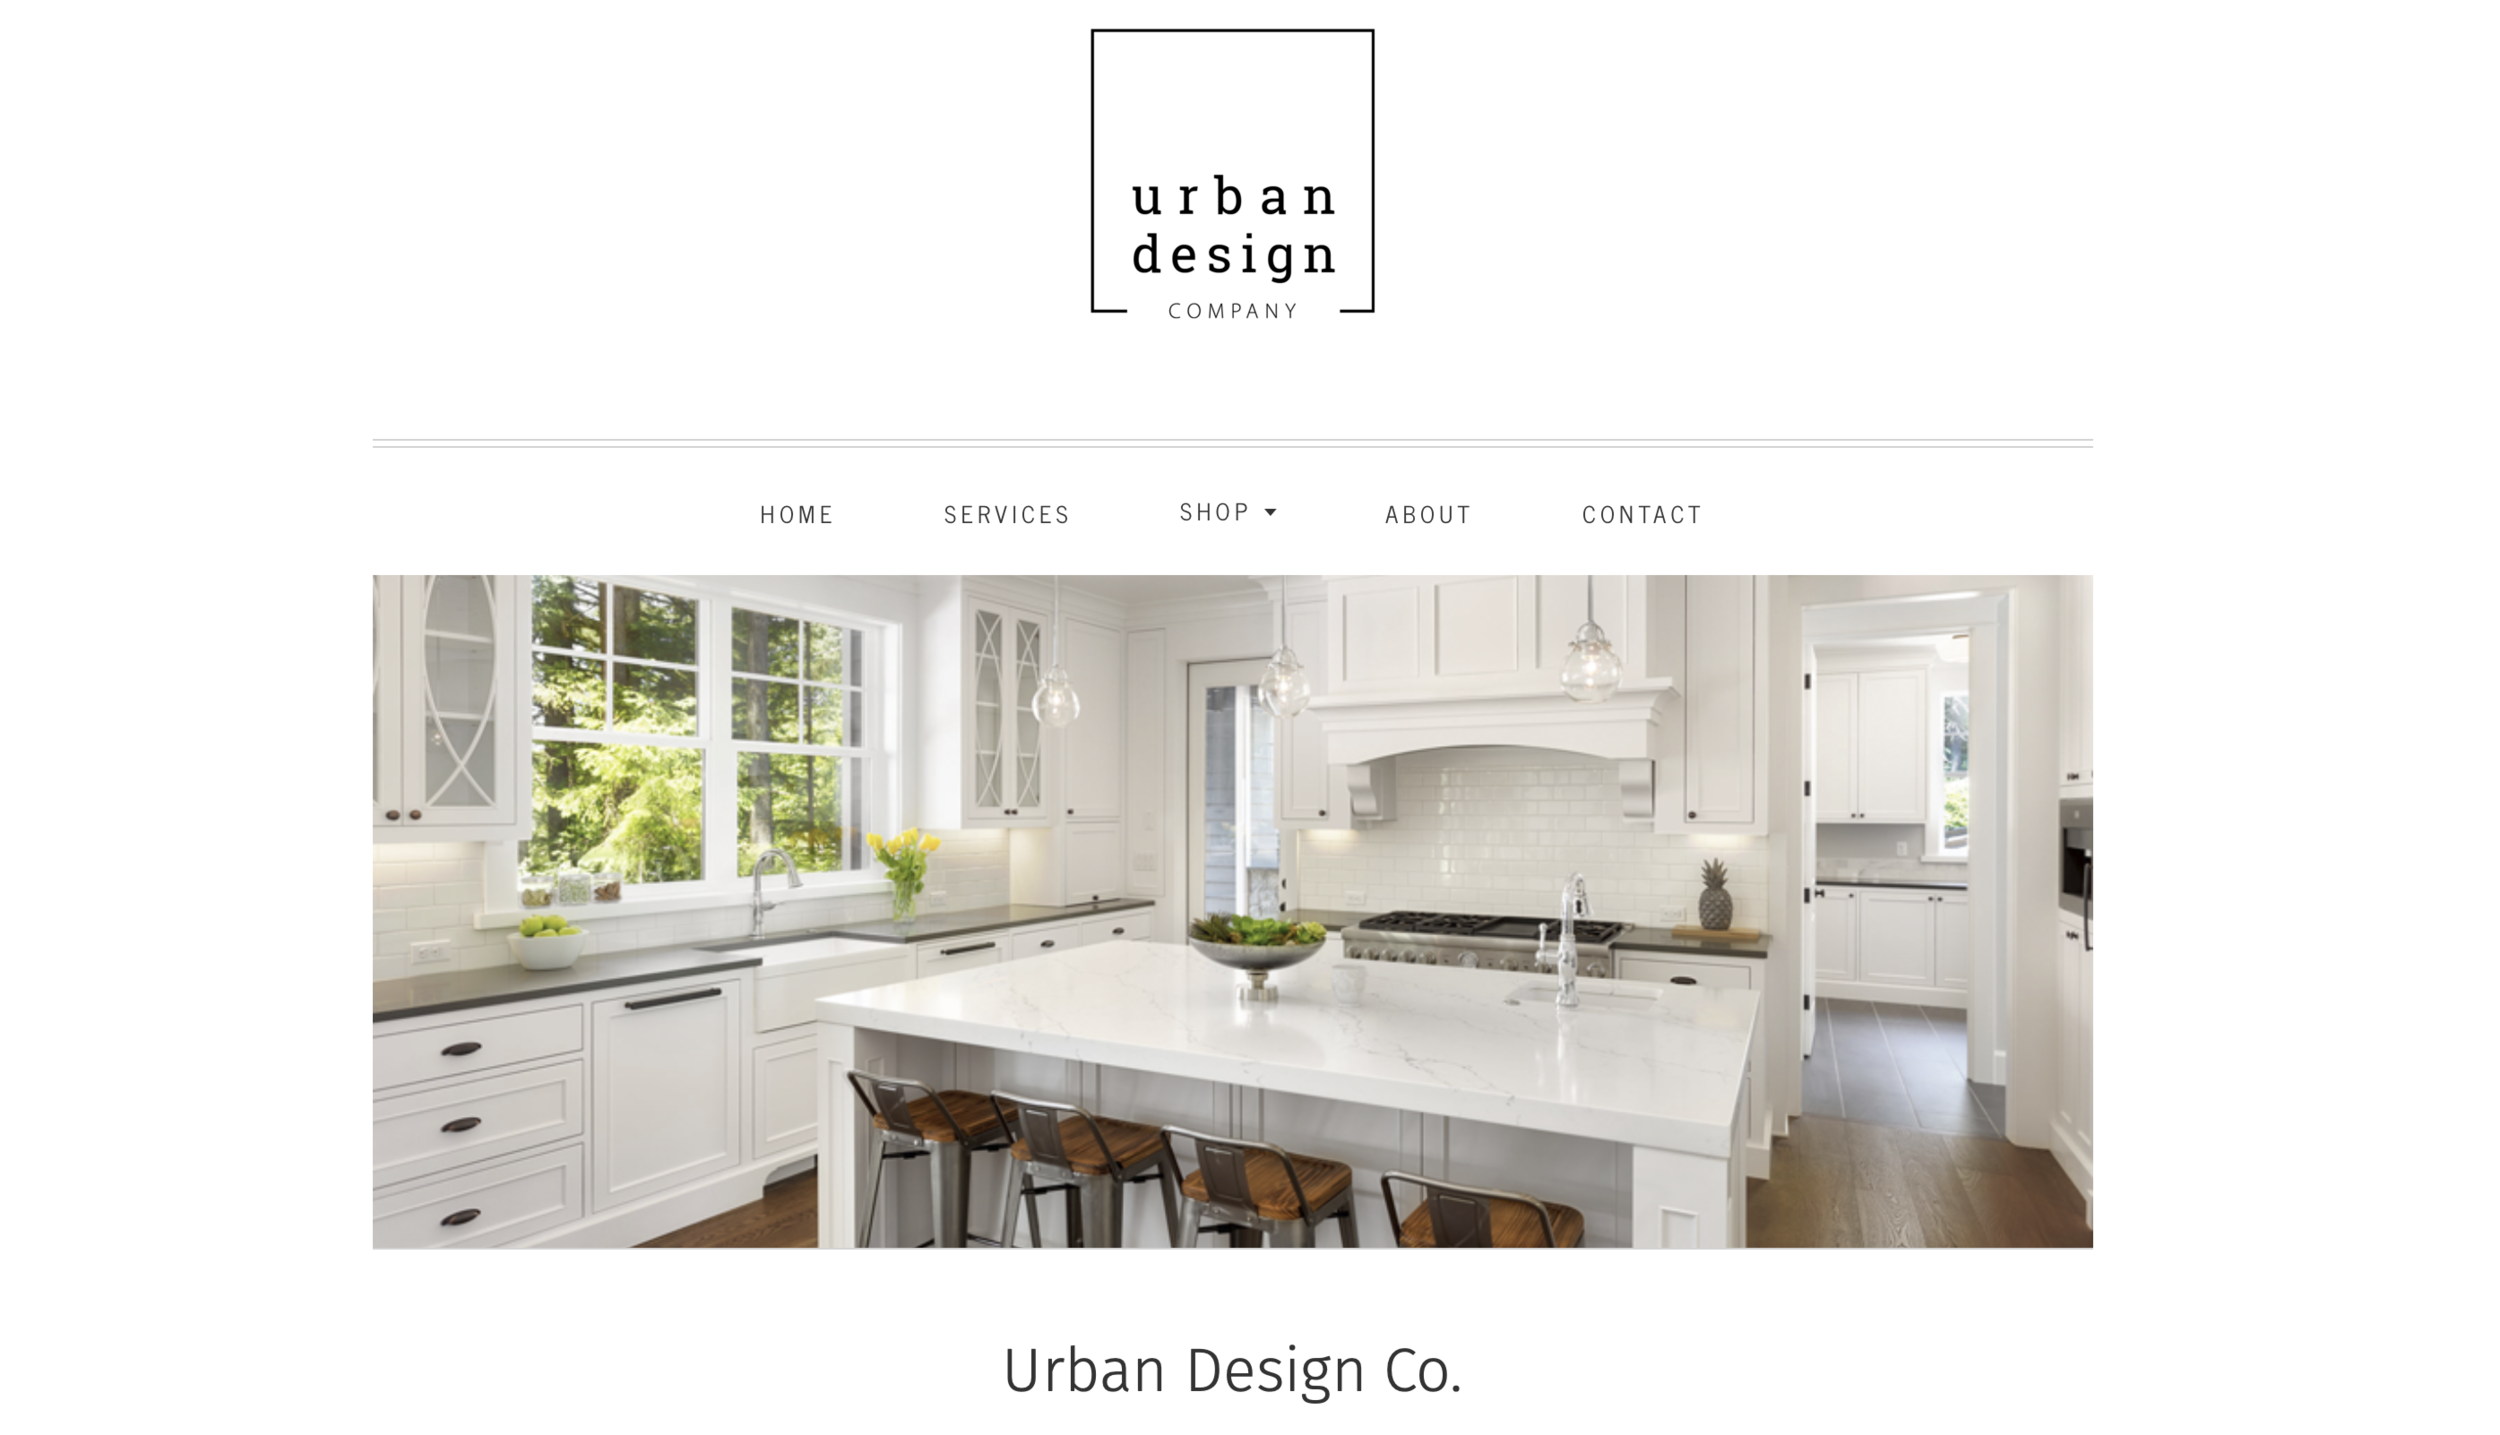 Image Depicts Web Design & Content Created for  Urban Design Co.  Landing Page. Platform: Shopify